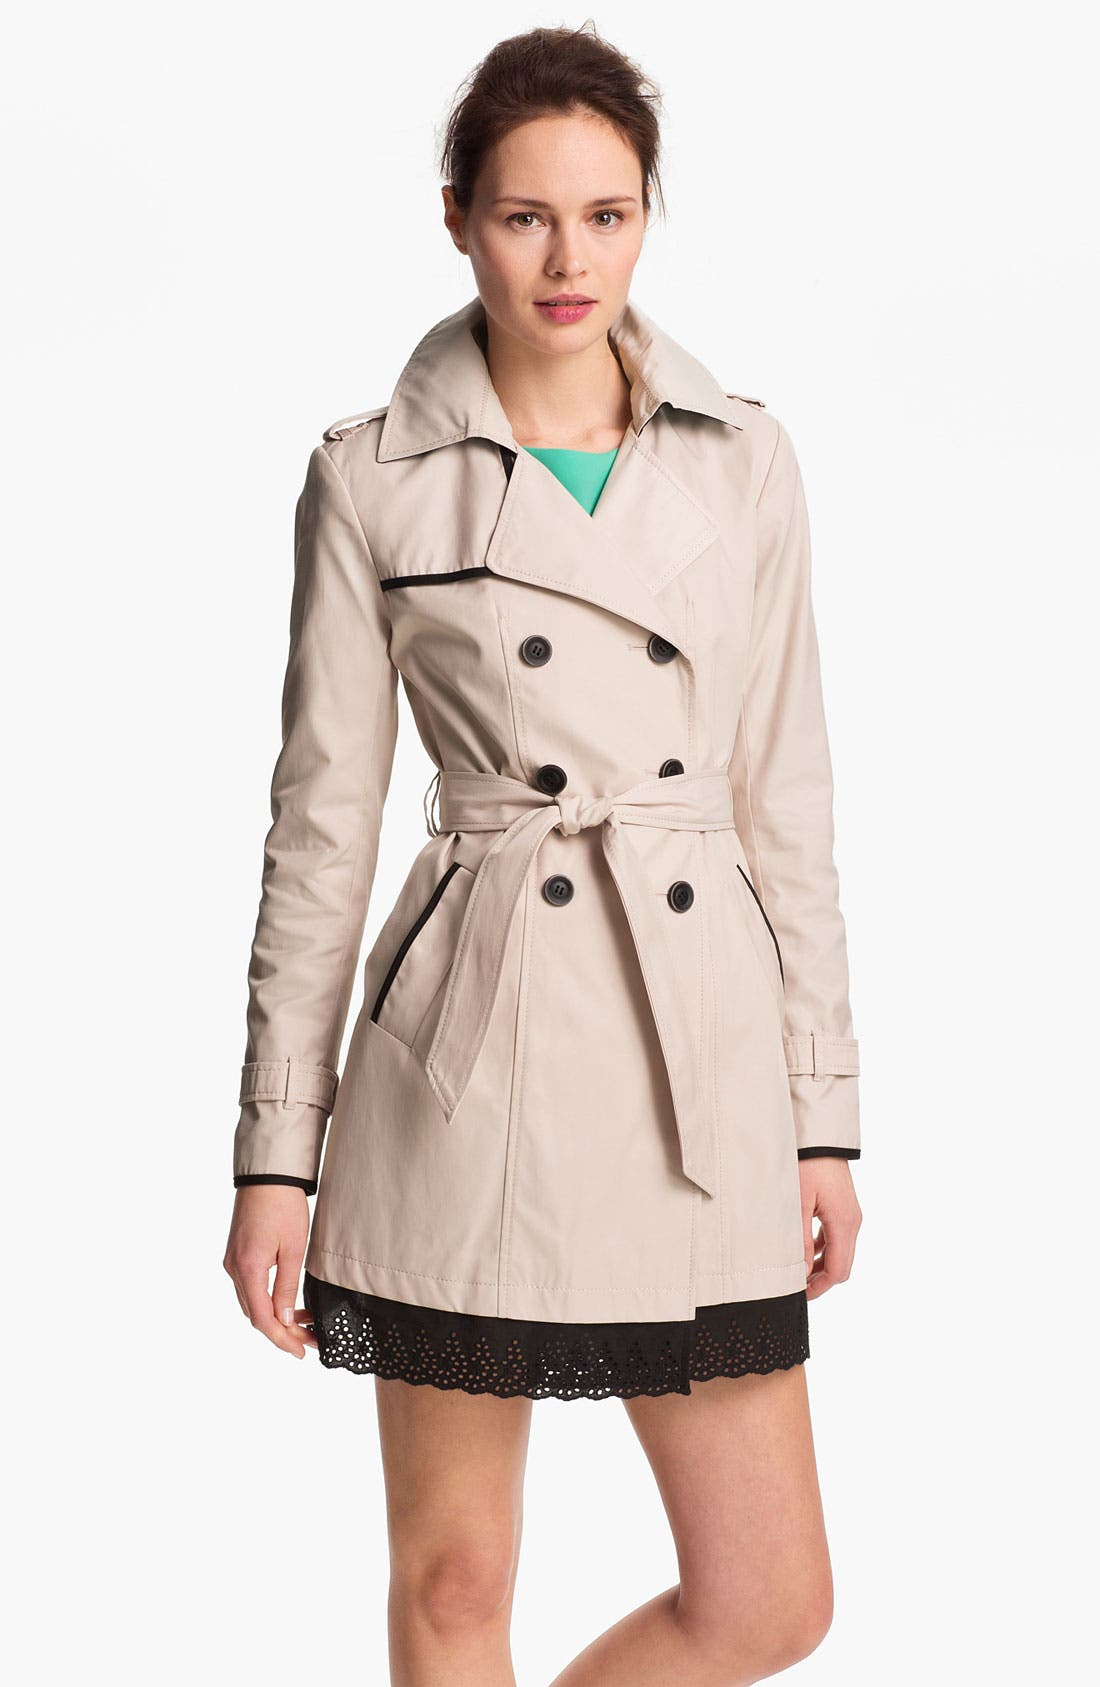 Alternate Image 1 Selected - Ivanka Trump Eyelet Trim Trench Coat (Online Only)